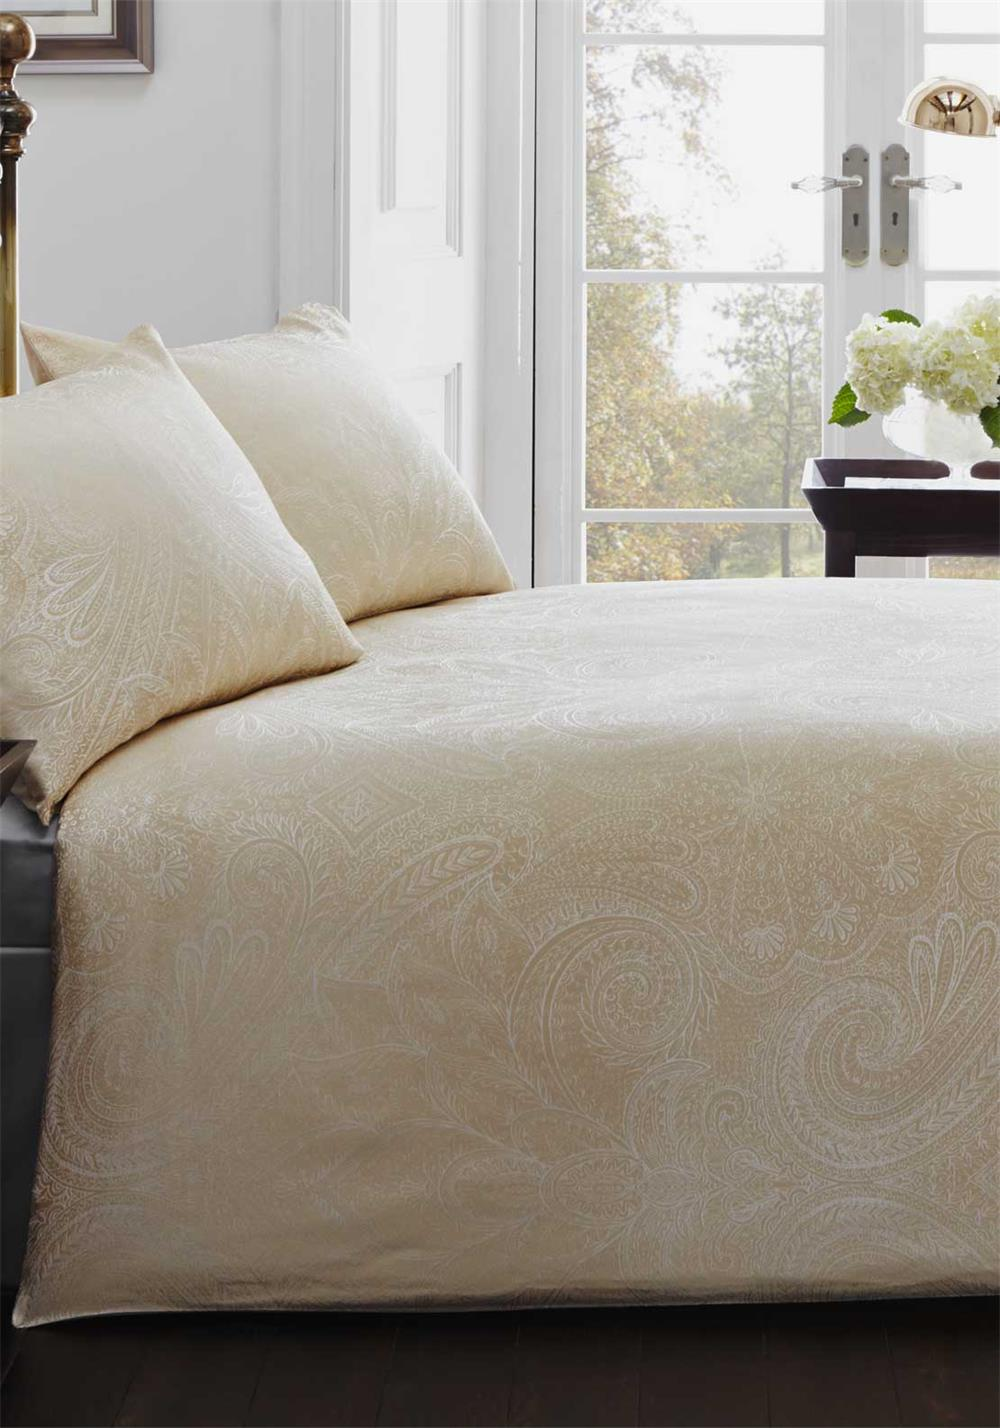 Country Classics Linden Luxury Woven Jacquard Duvet Set, Gold